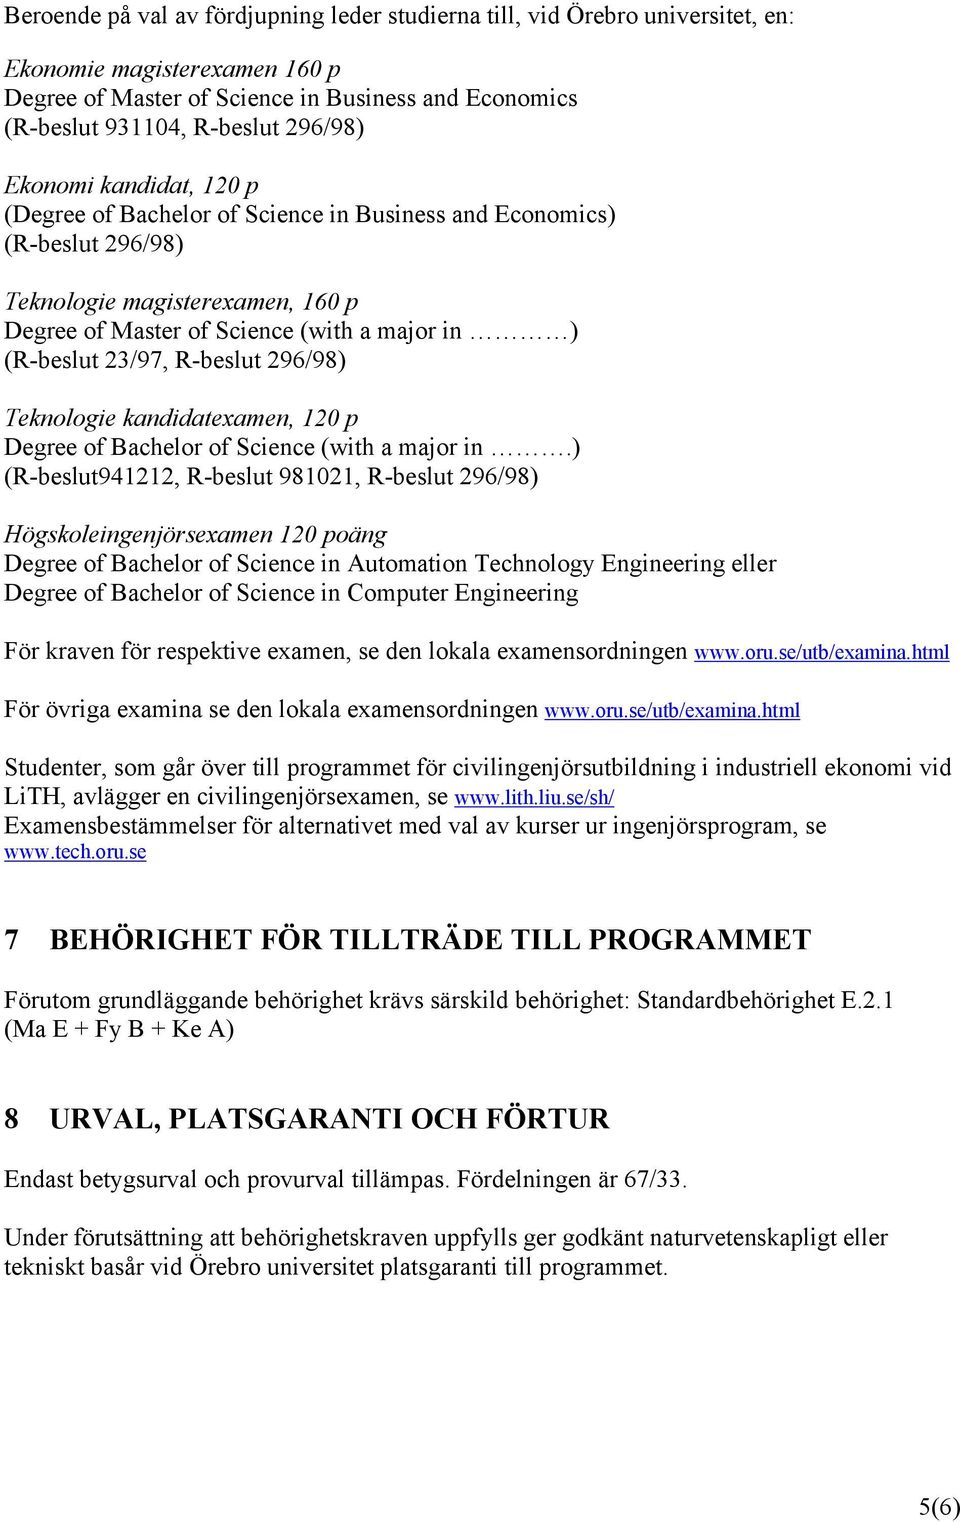 R-beslut 296/98) Teknologie kandidatexamen, 120 p Degree of Bachelor of Science (with a major in.